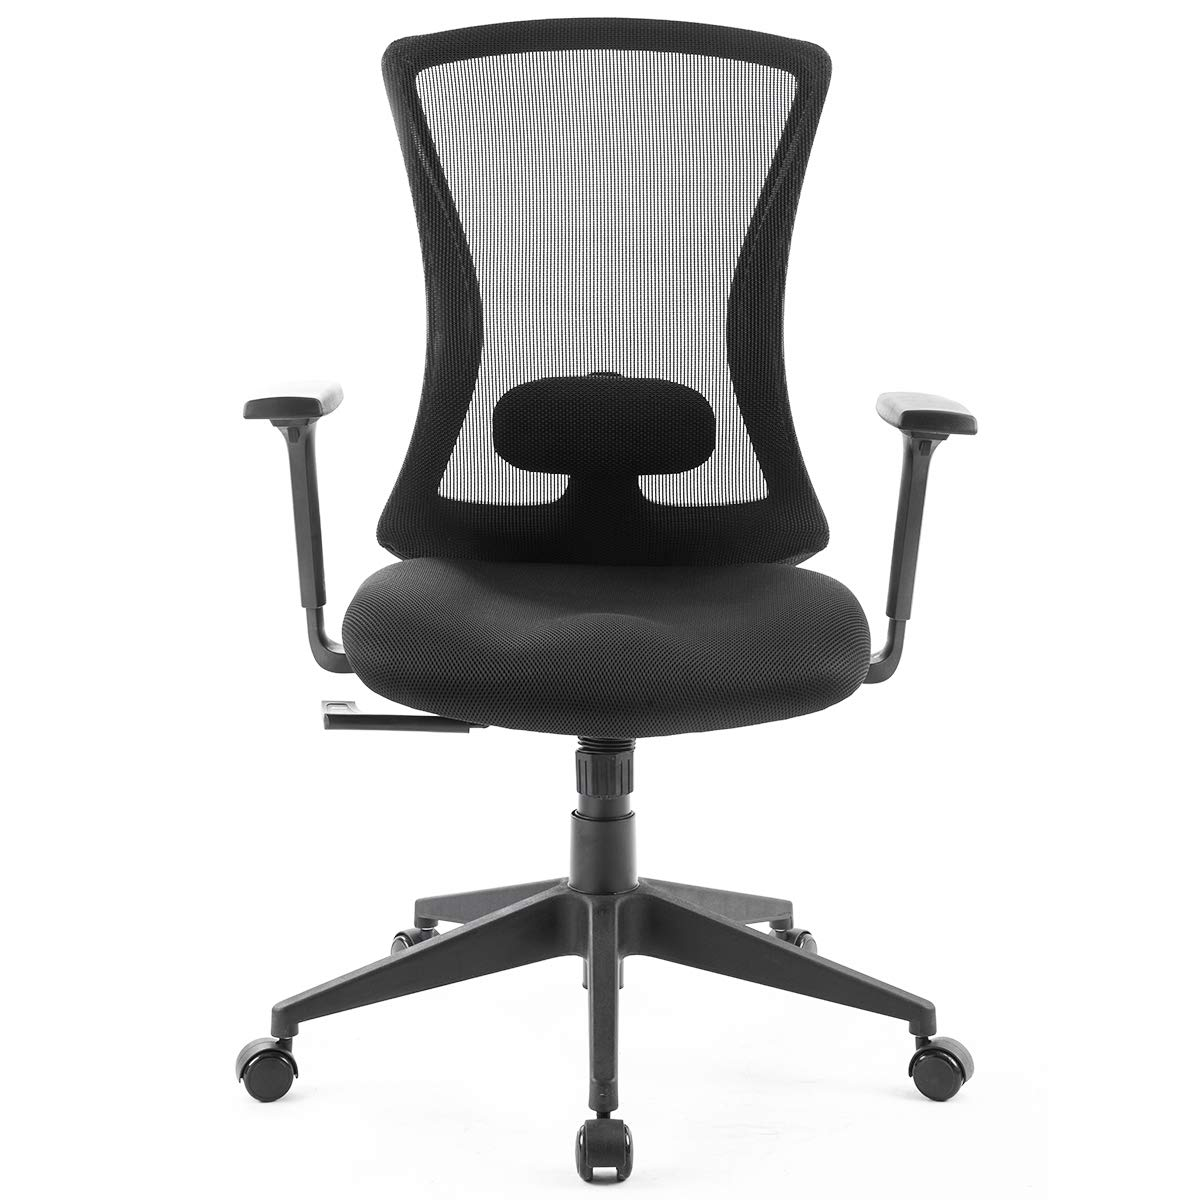 MIERES Ergonomic Office Chair Use Mesh Fabric and Plating Base with Adjustable Headrest and Flip-up Armrest,New Tilt Locking Mechanism, Black